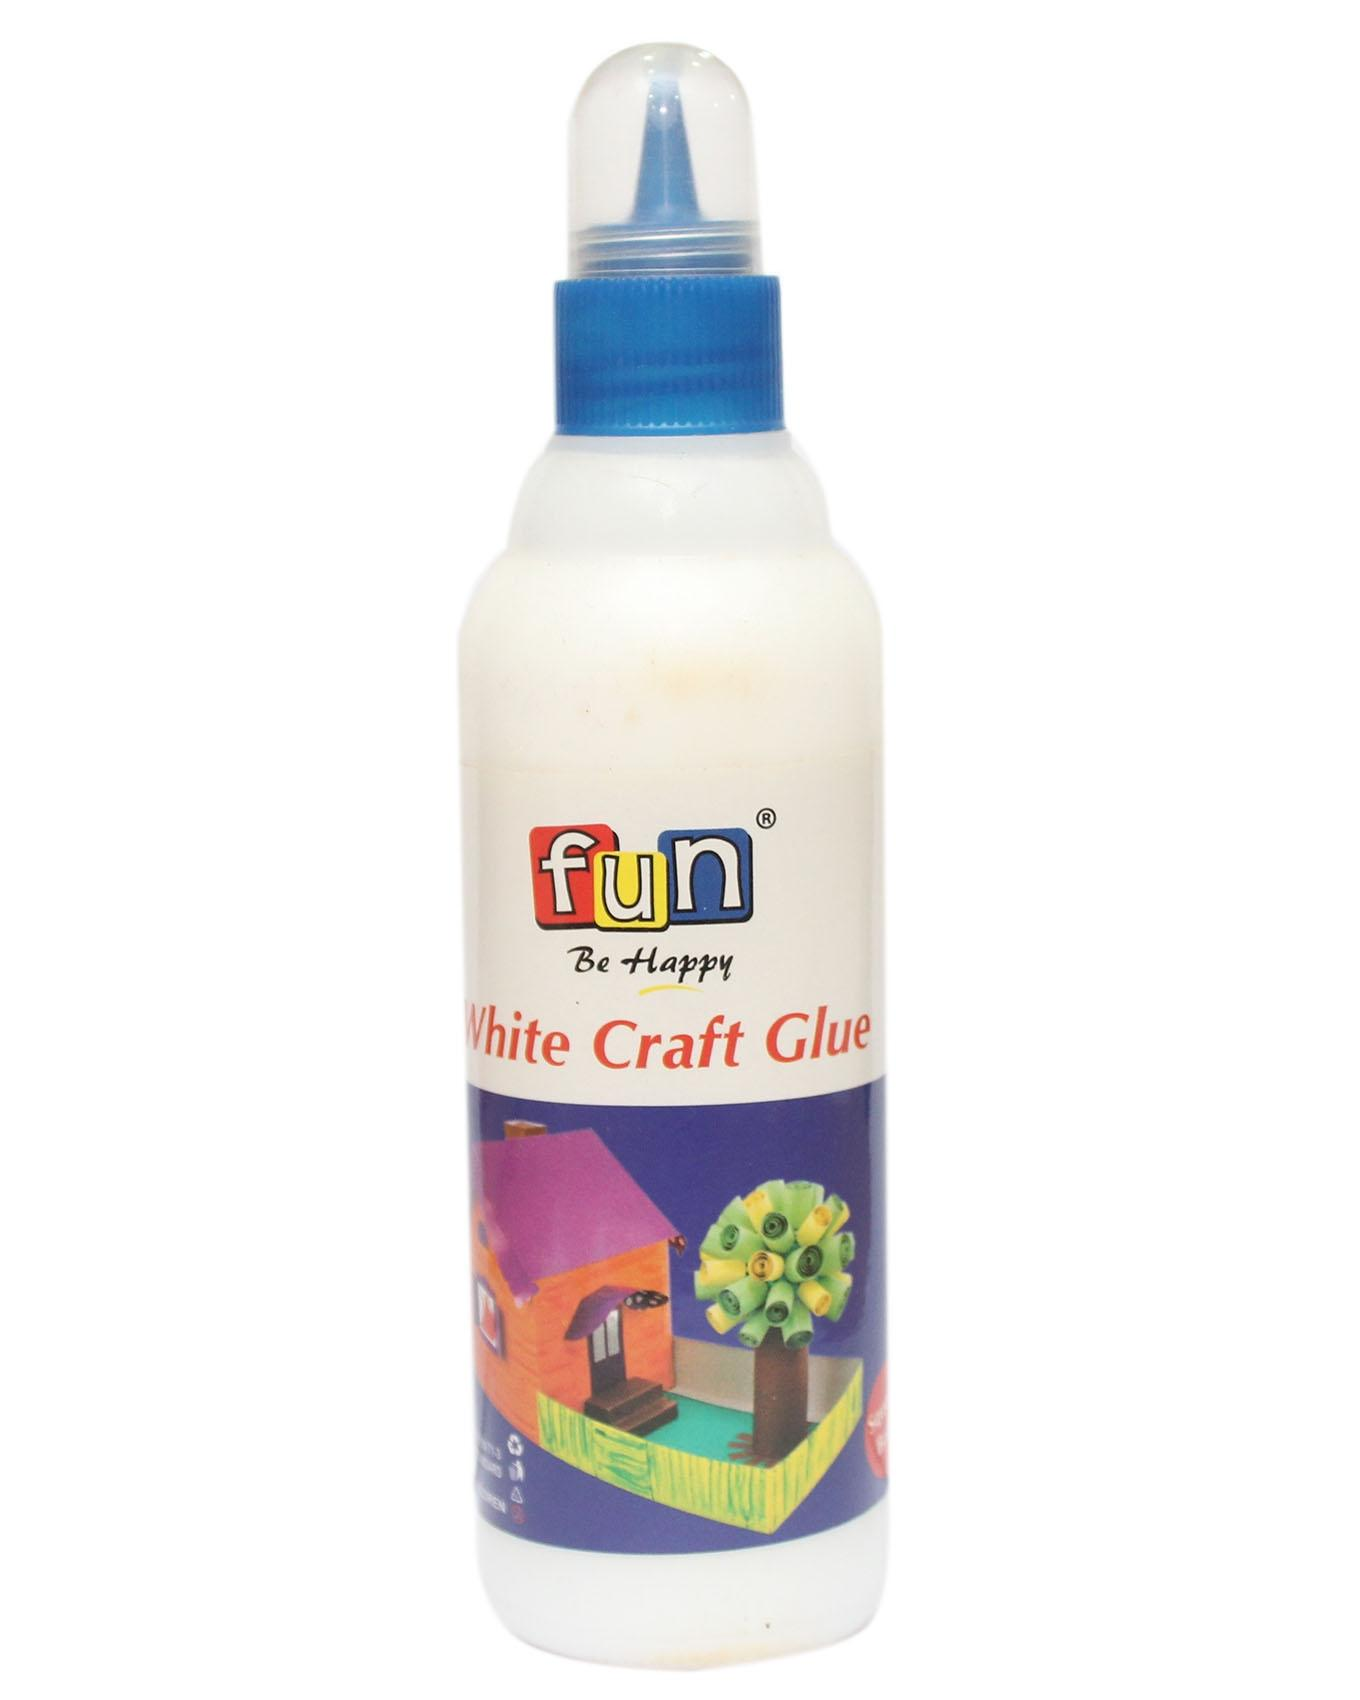 Abs Glue Buy Fun Abs Home Glues Adhesive At Best Prices Online In Sri